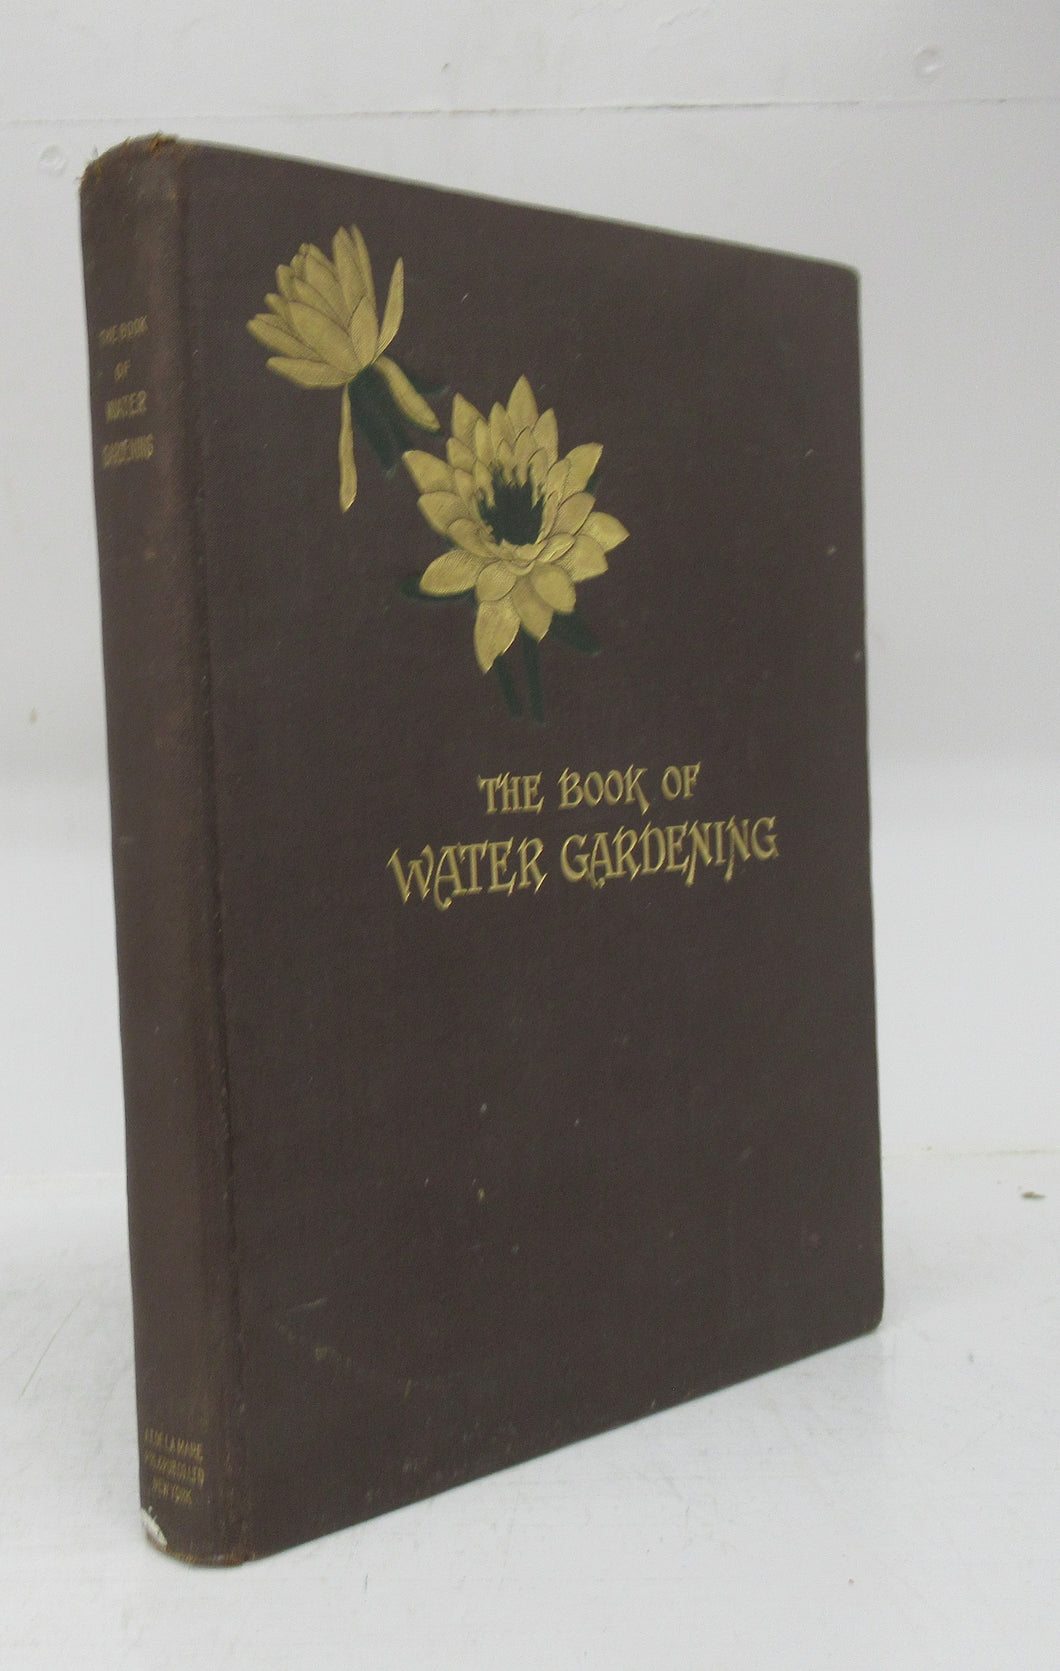 The Book of Water Gardening